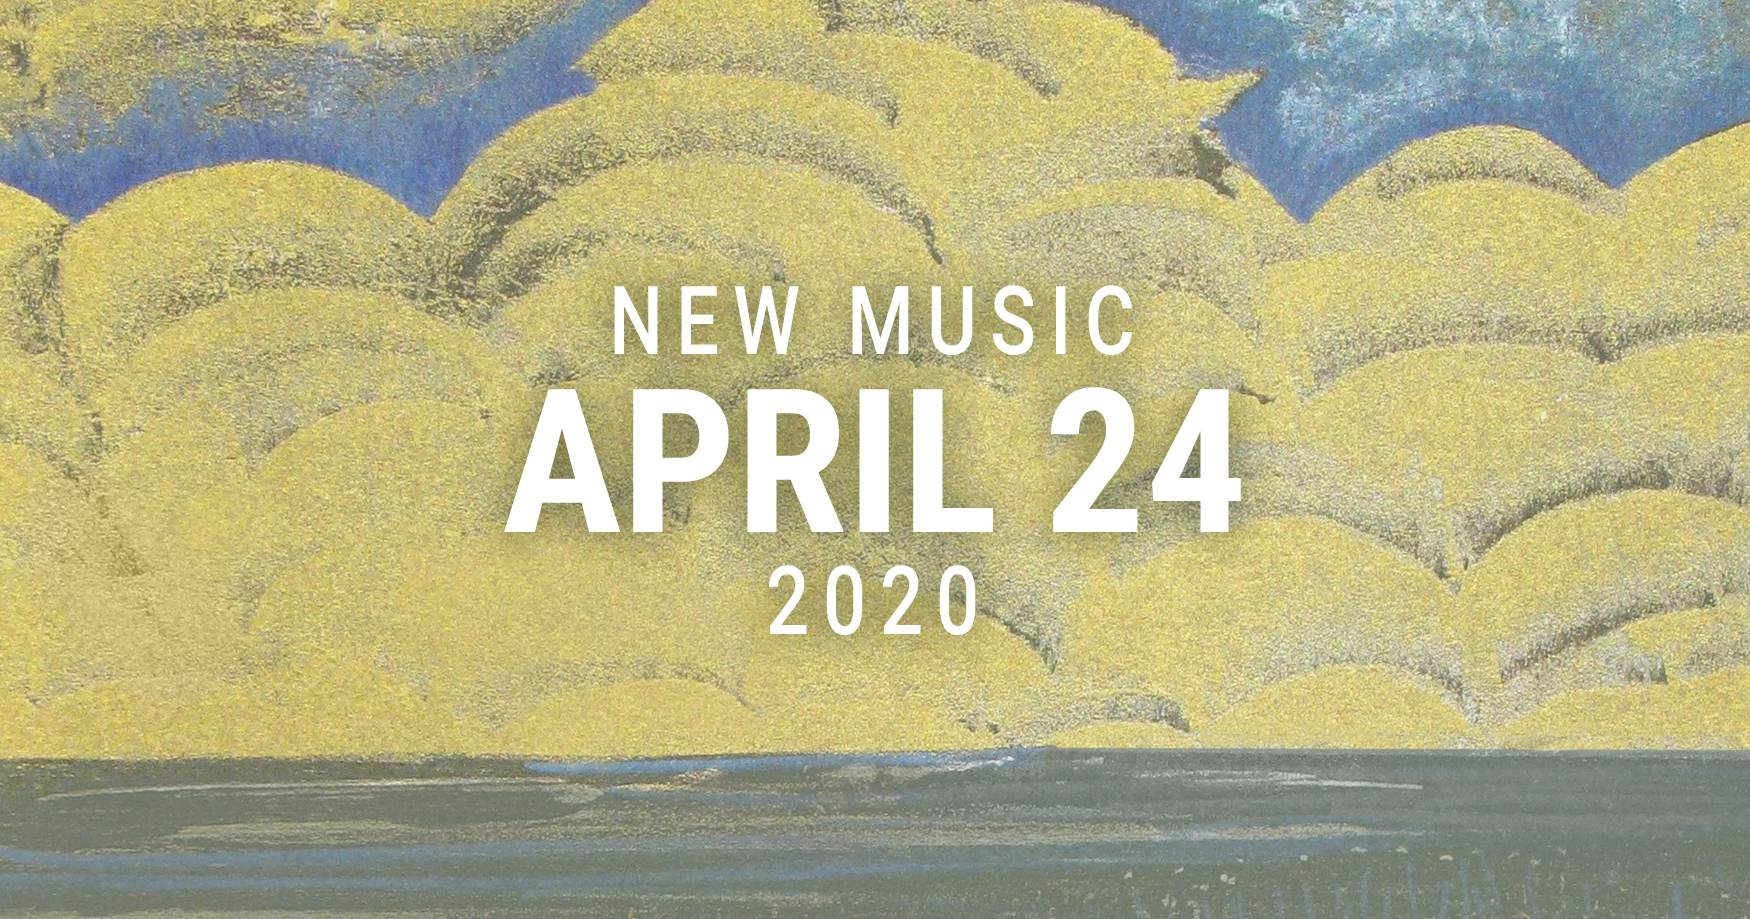 New Music April 24 2020